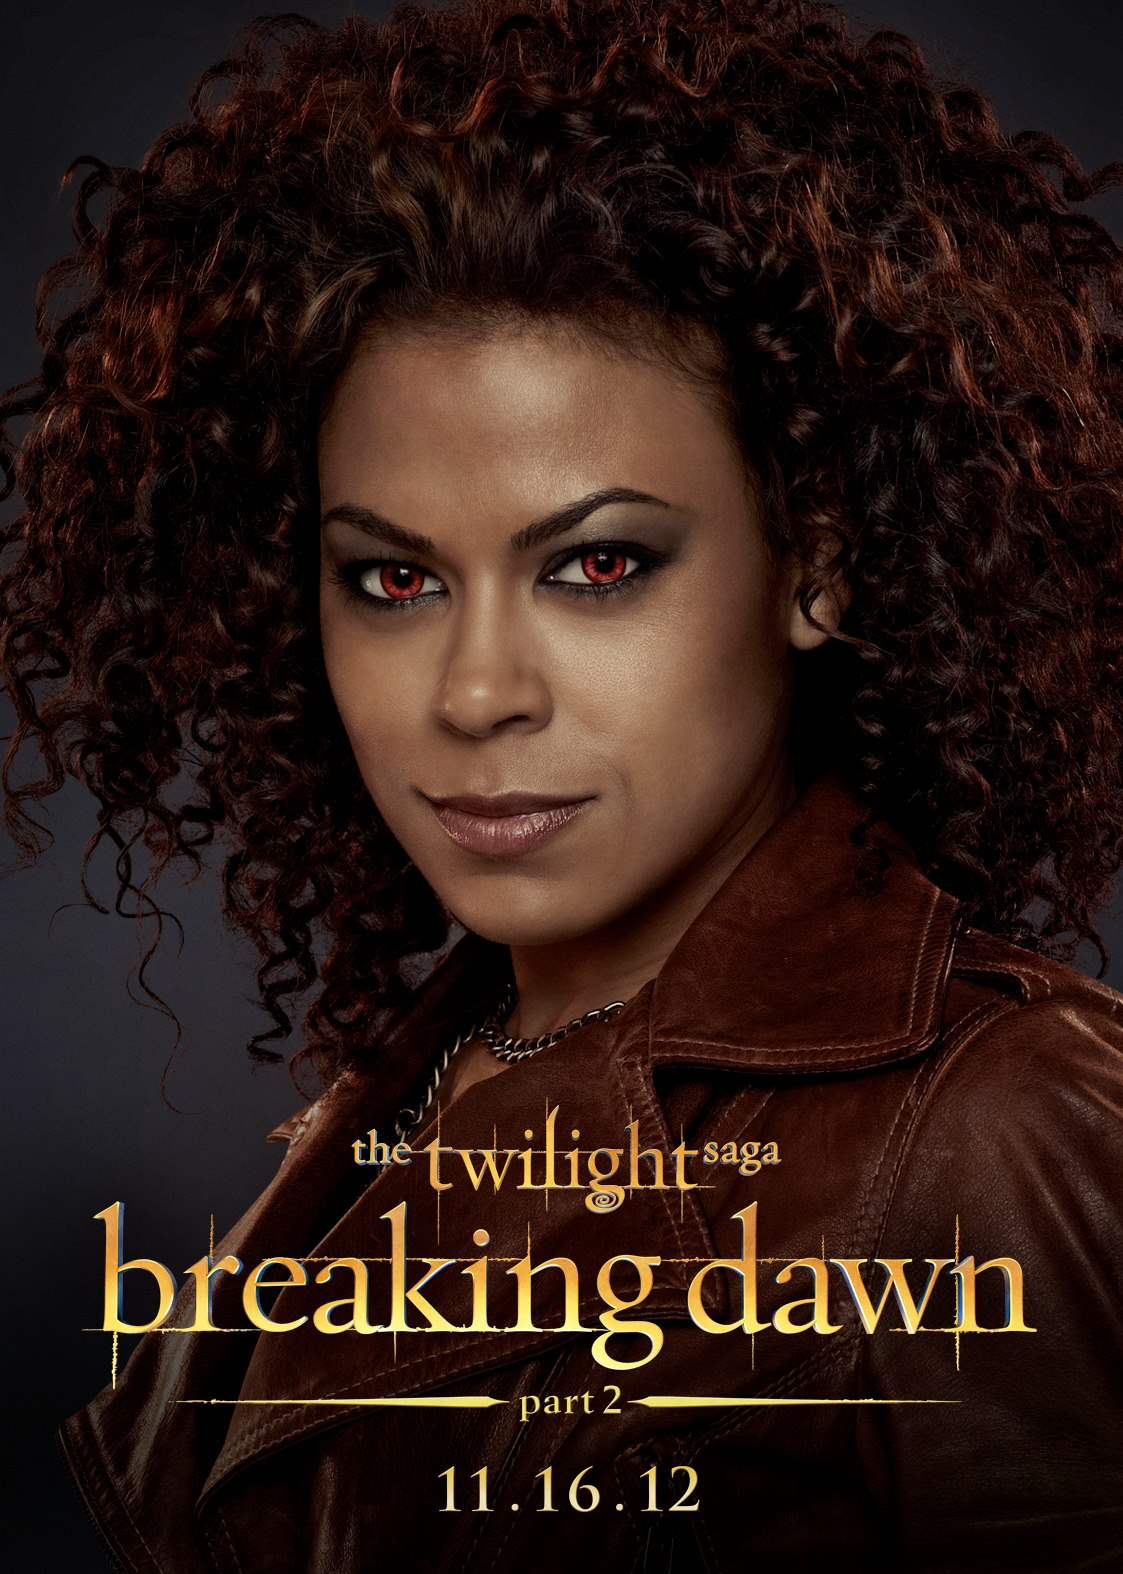 Breaking Dawn Part 2 Breaking Dawn Part 2 Character Poster